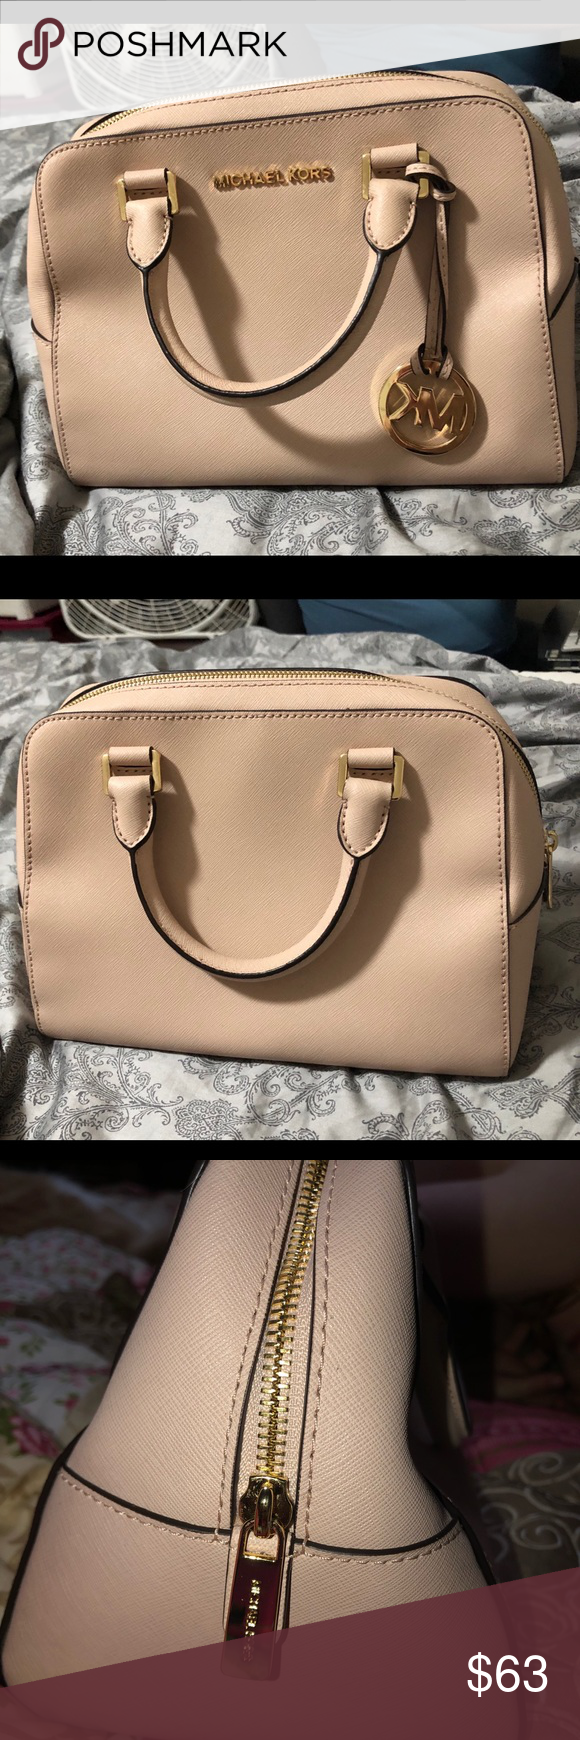 82b6f7d7b102 Michael Kors handbag Excellent condition. Did not come with a long strap .  Vinted  50